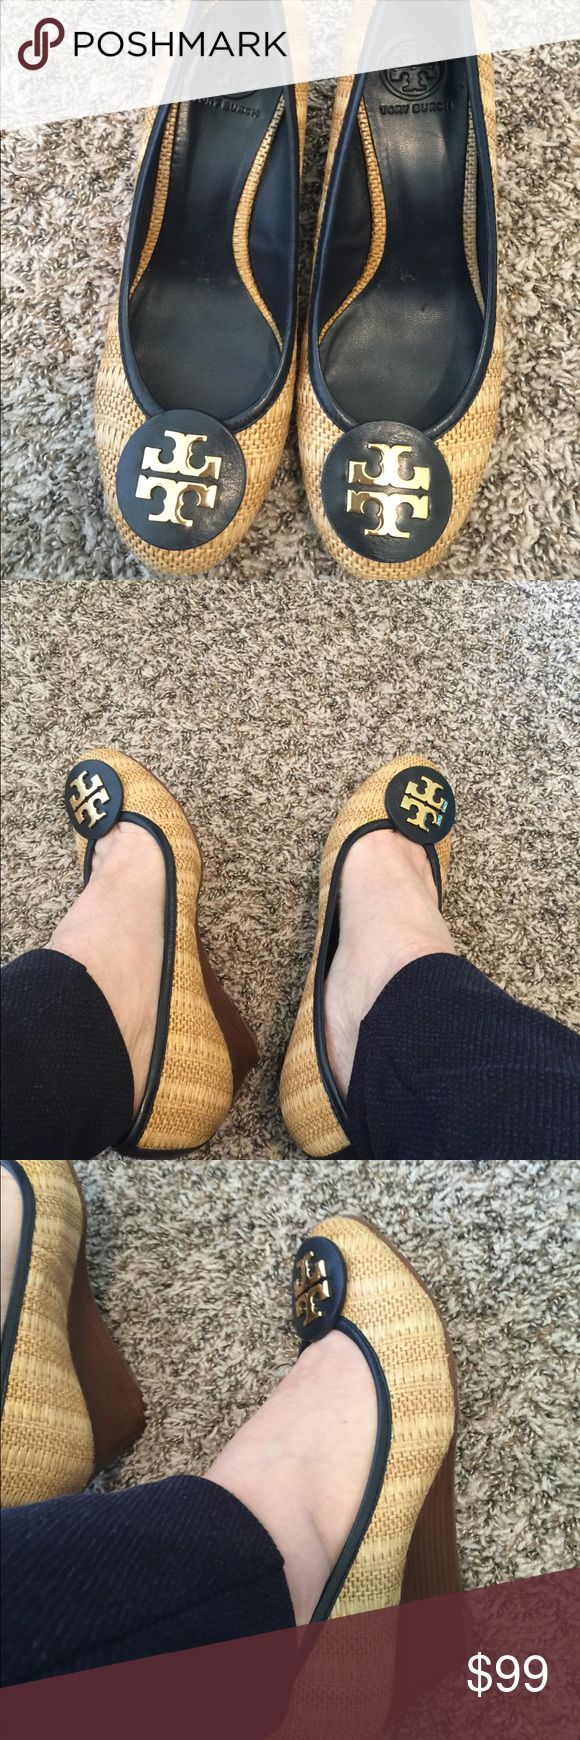 Black Friday $79 Tory Burch Navy Wicker Wedge Navy and gold logo accent wedge shoes  Authentic TB Tory Burch Shoes Platforms